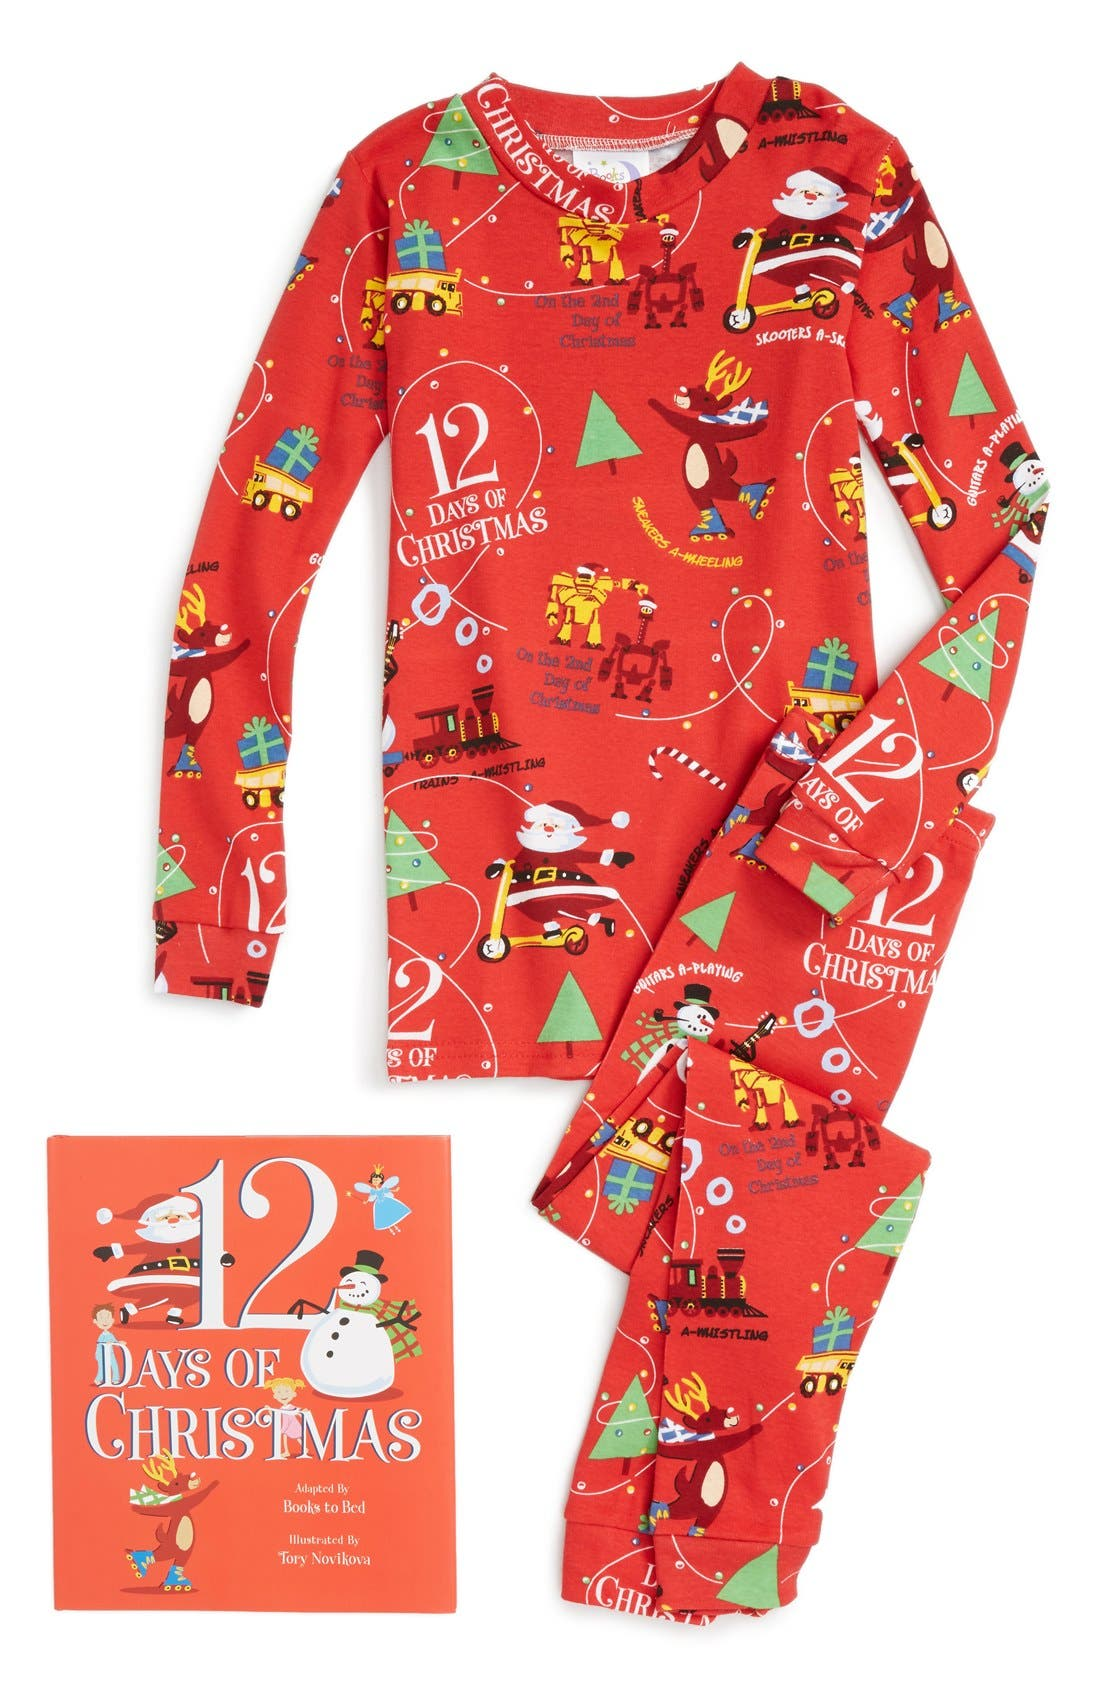 12 Days of Christmas Fitted Two-Piece Pajamas & Book Set,                             Main thumbnail 1, color,                             Red